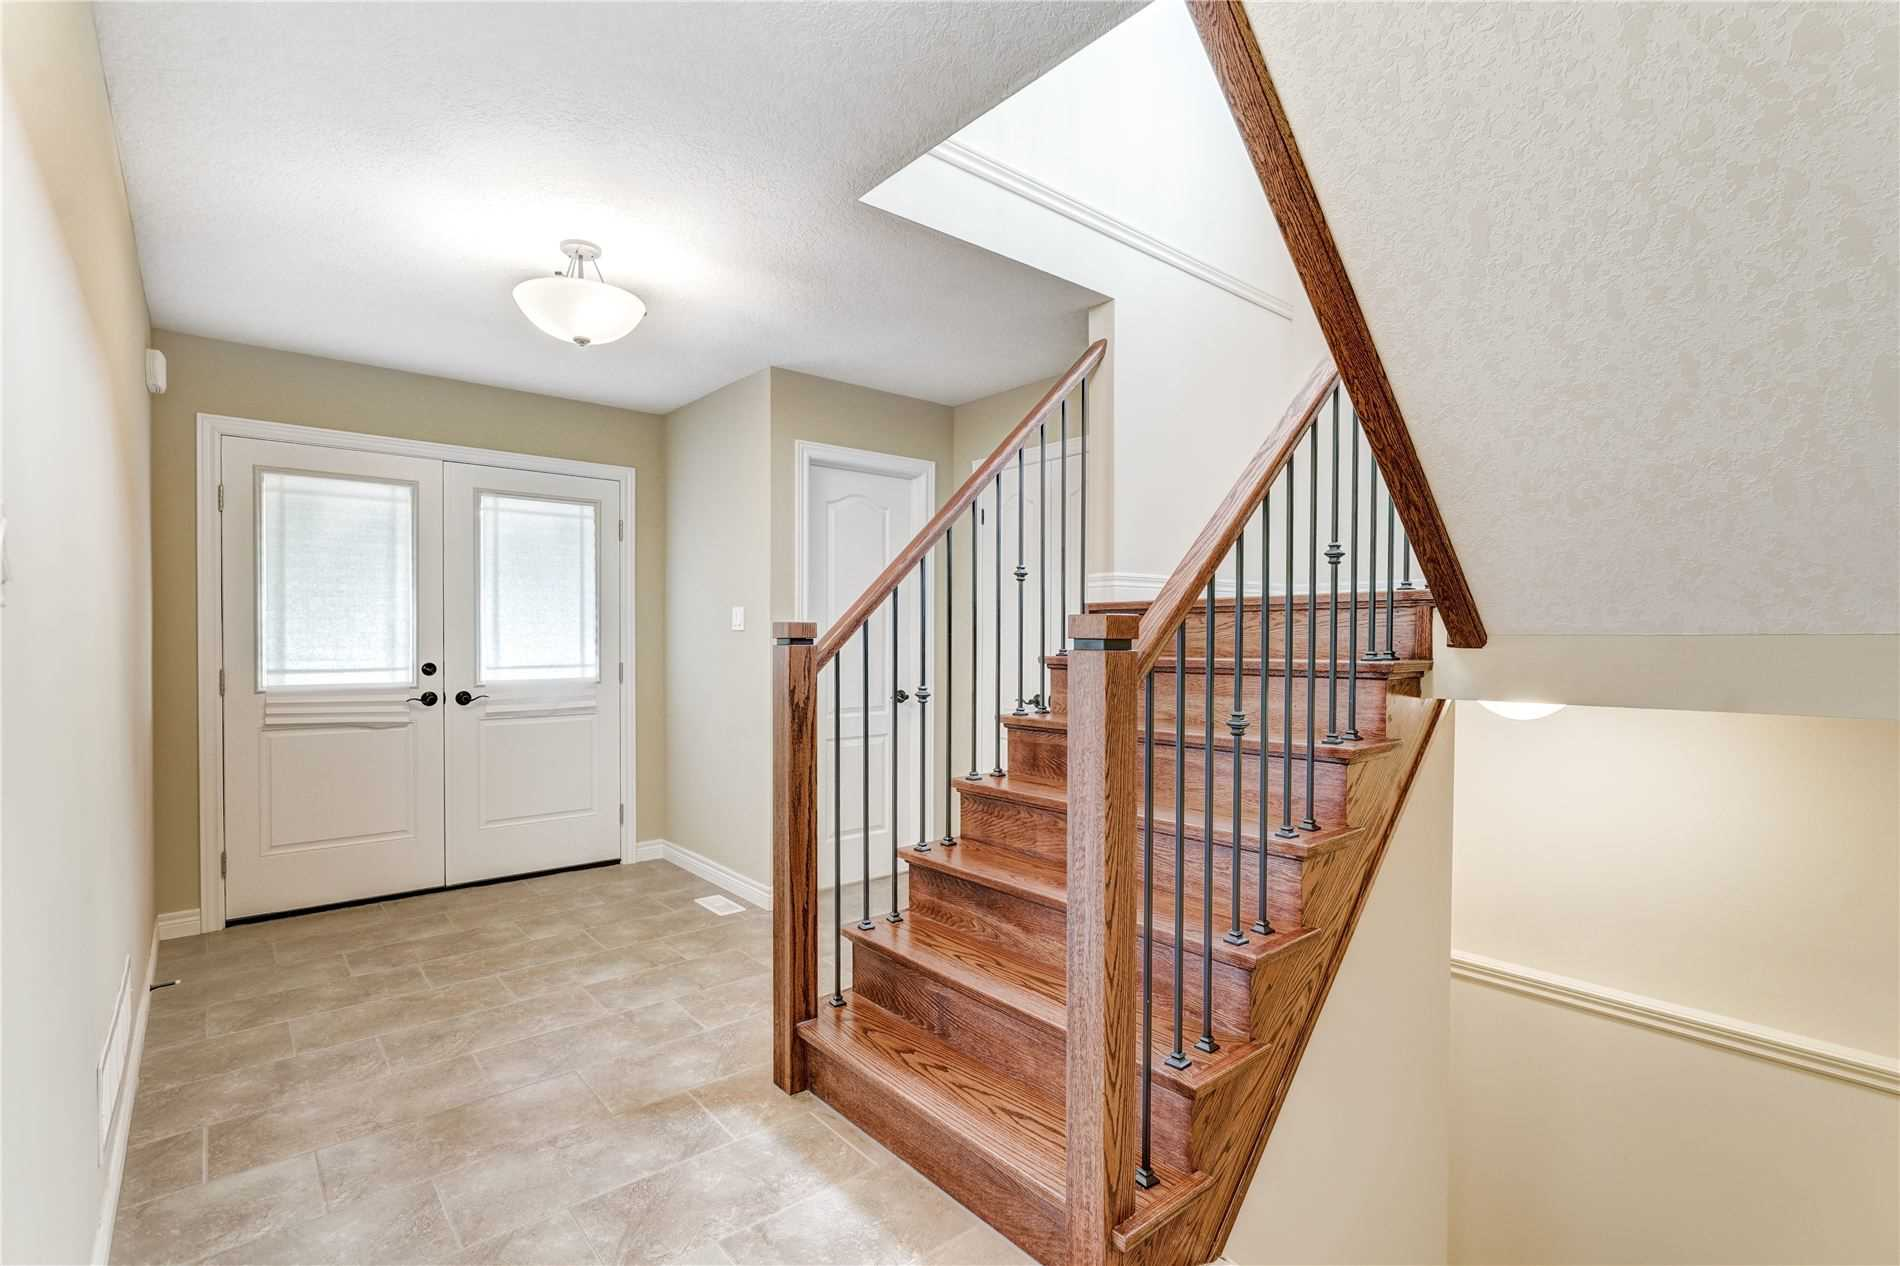 Image 13 of 19 showing inside of 4 Bedroom Detached 2-Storey house for sale at 4 Stuckey Lane, East Luther Grand Valley L0N1G0